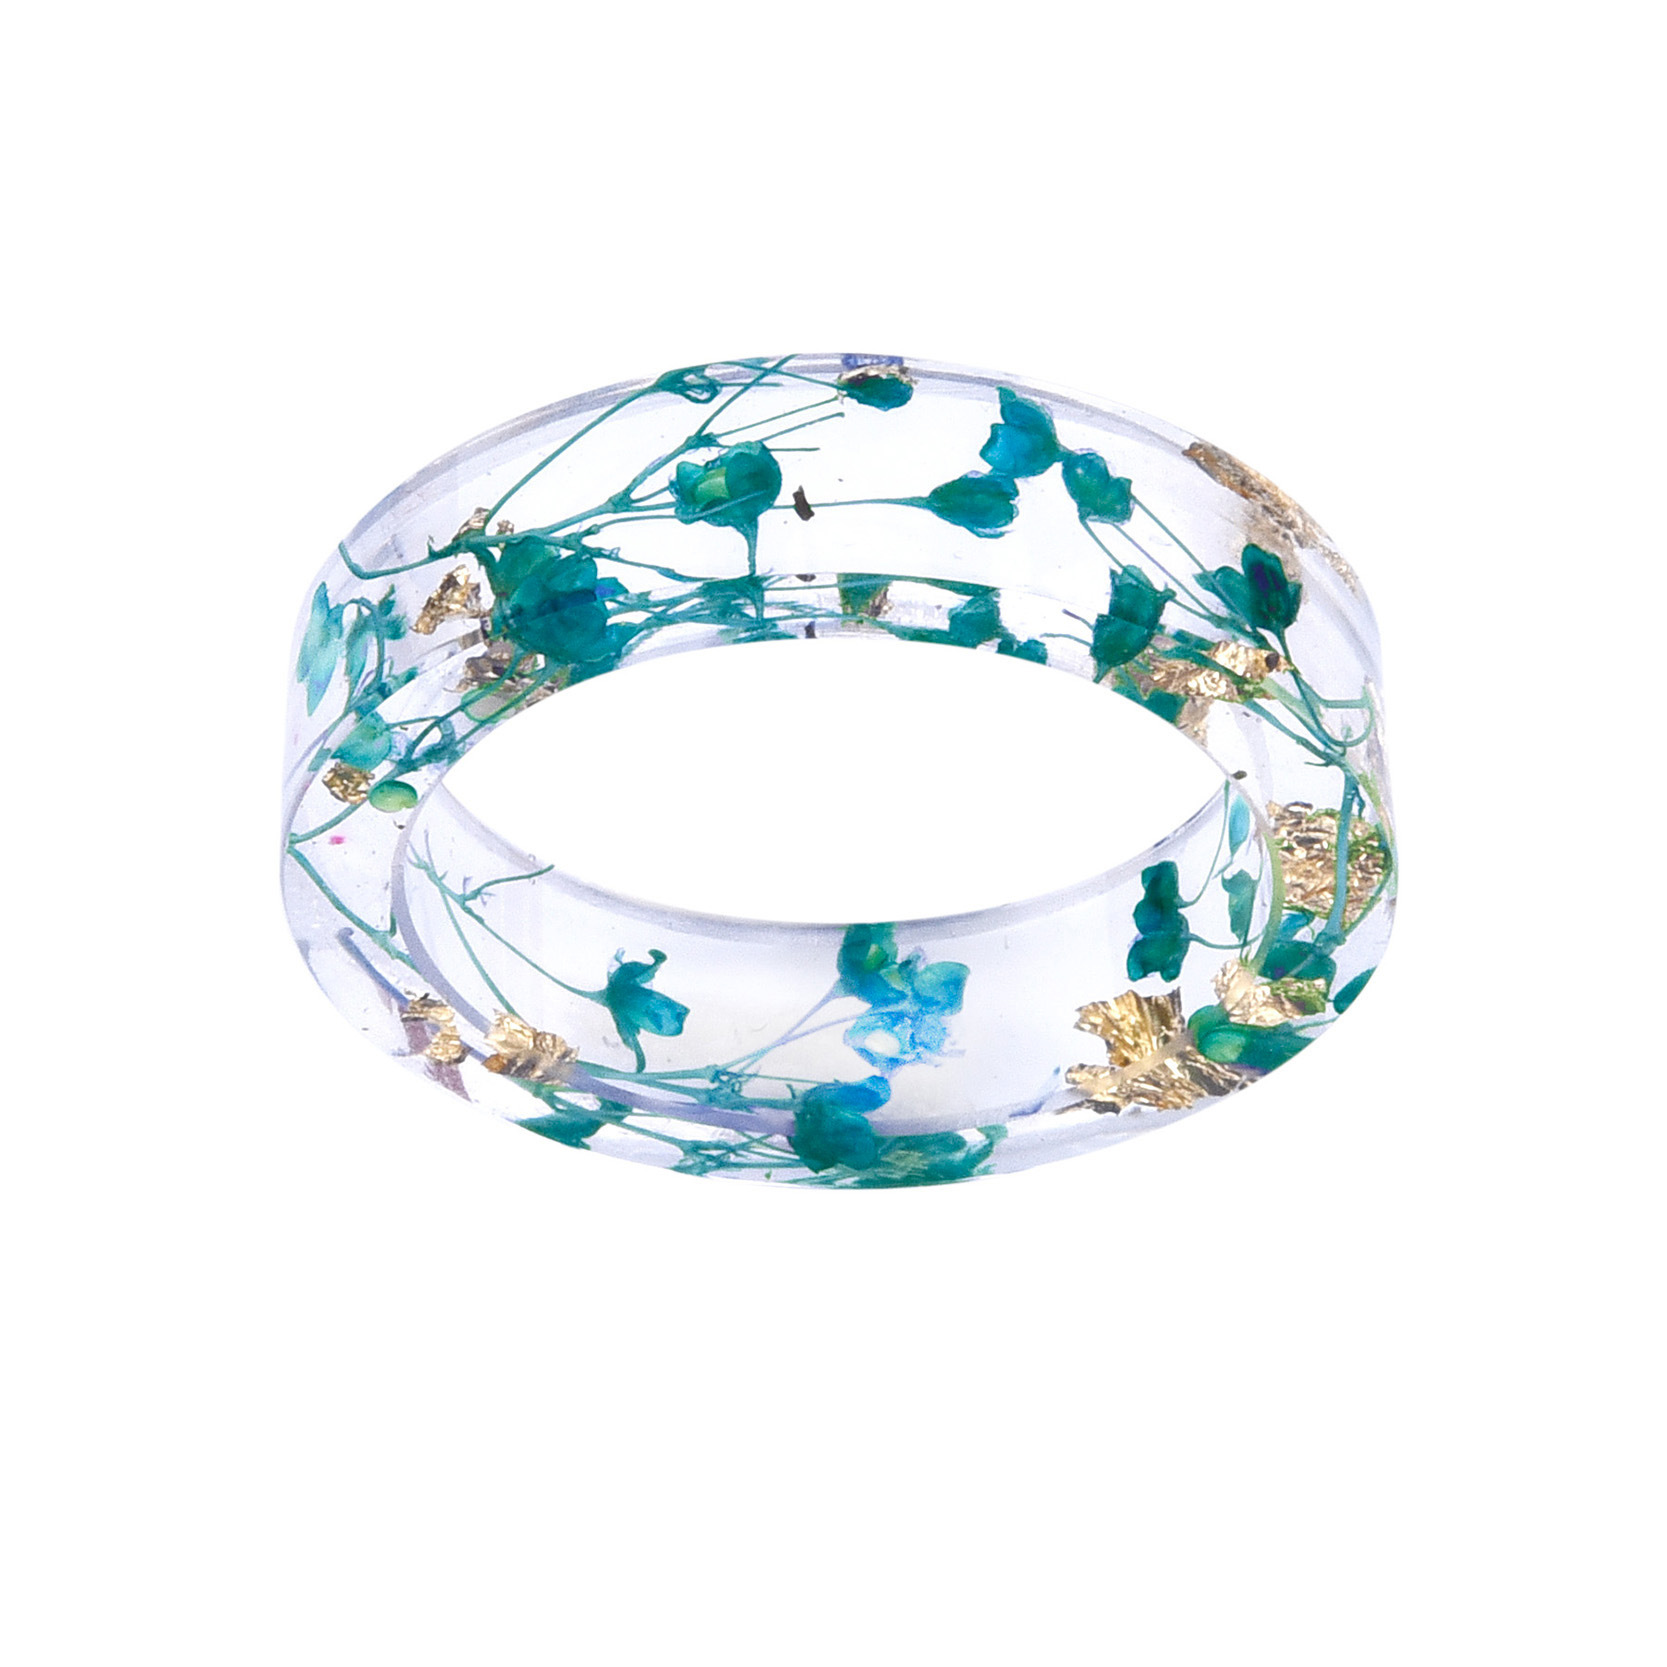 2018 New Fashion Fresh Transparent Dried Flowers Ring  Party Jewelry Cute Resin Rings For Women Romantic